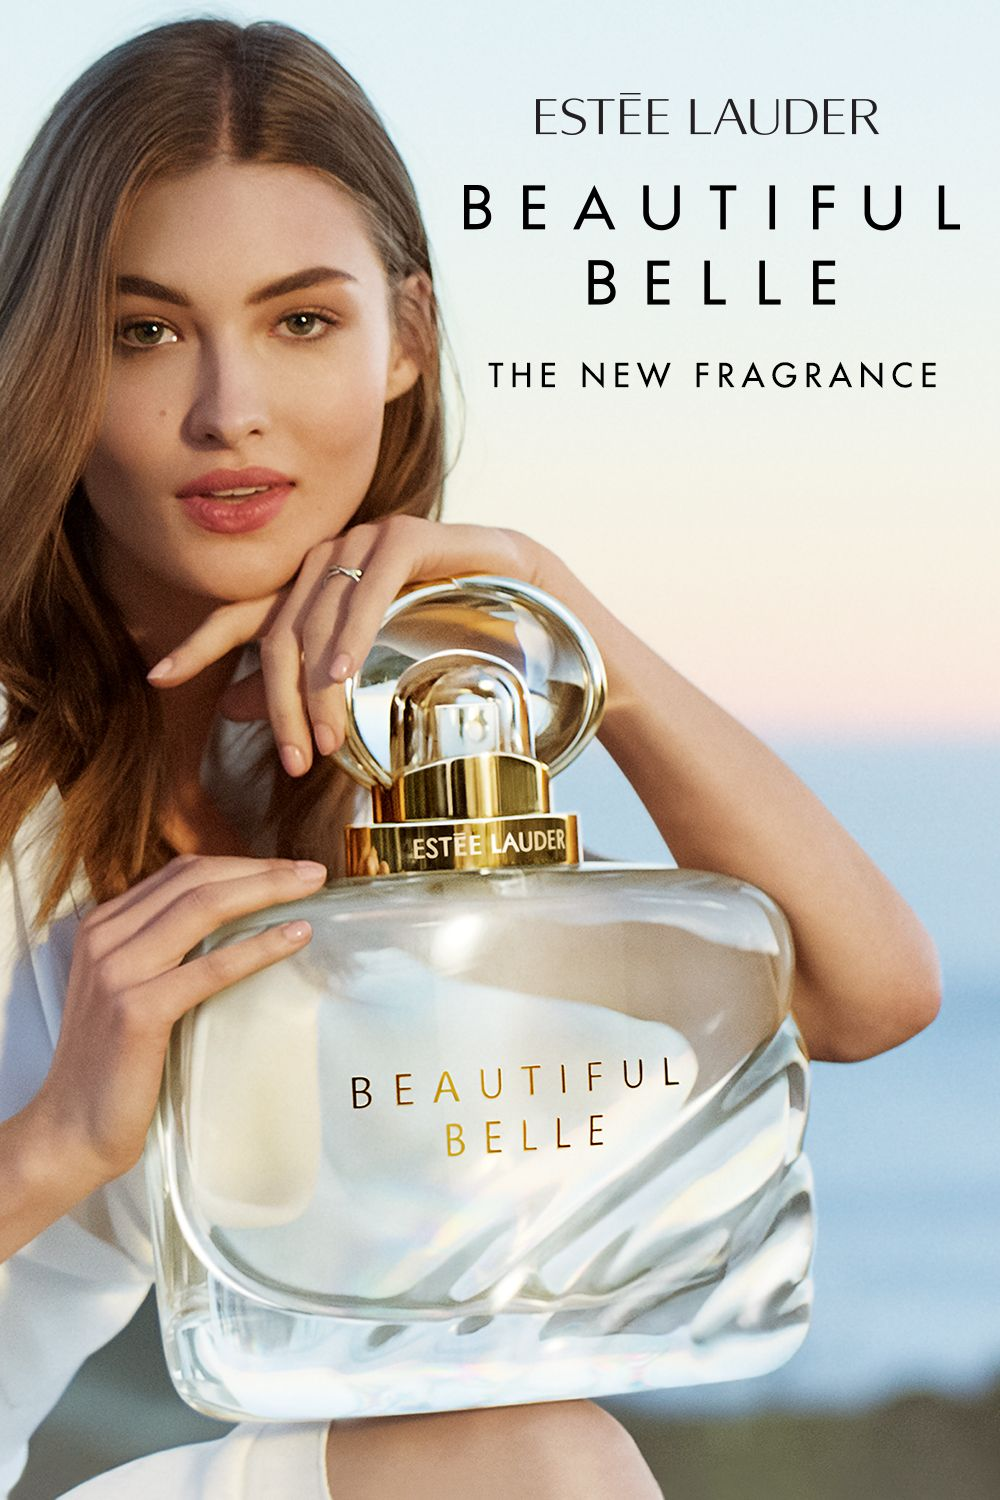 ba0c3b38f Calling all brides to be! Meet Beautiful Belle by Estée Lauder, something  NEW for your big day. Our latest fragrance inspired by the thrill of love,  ...